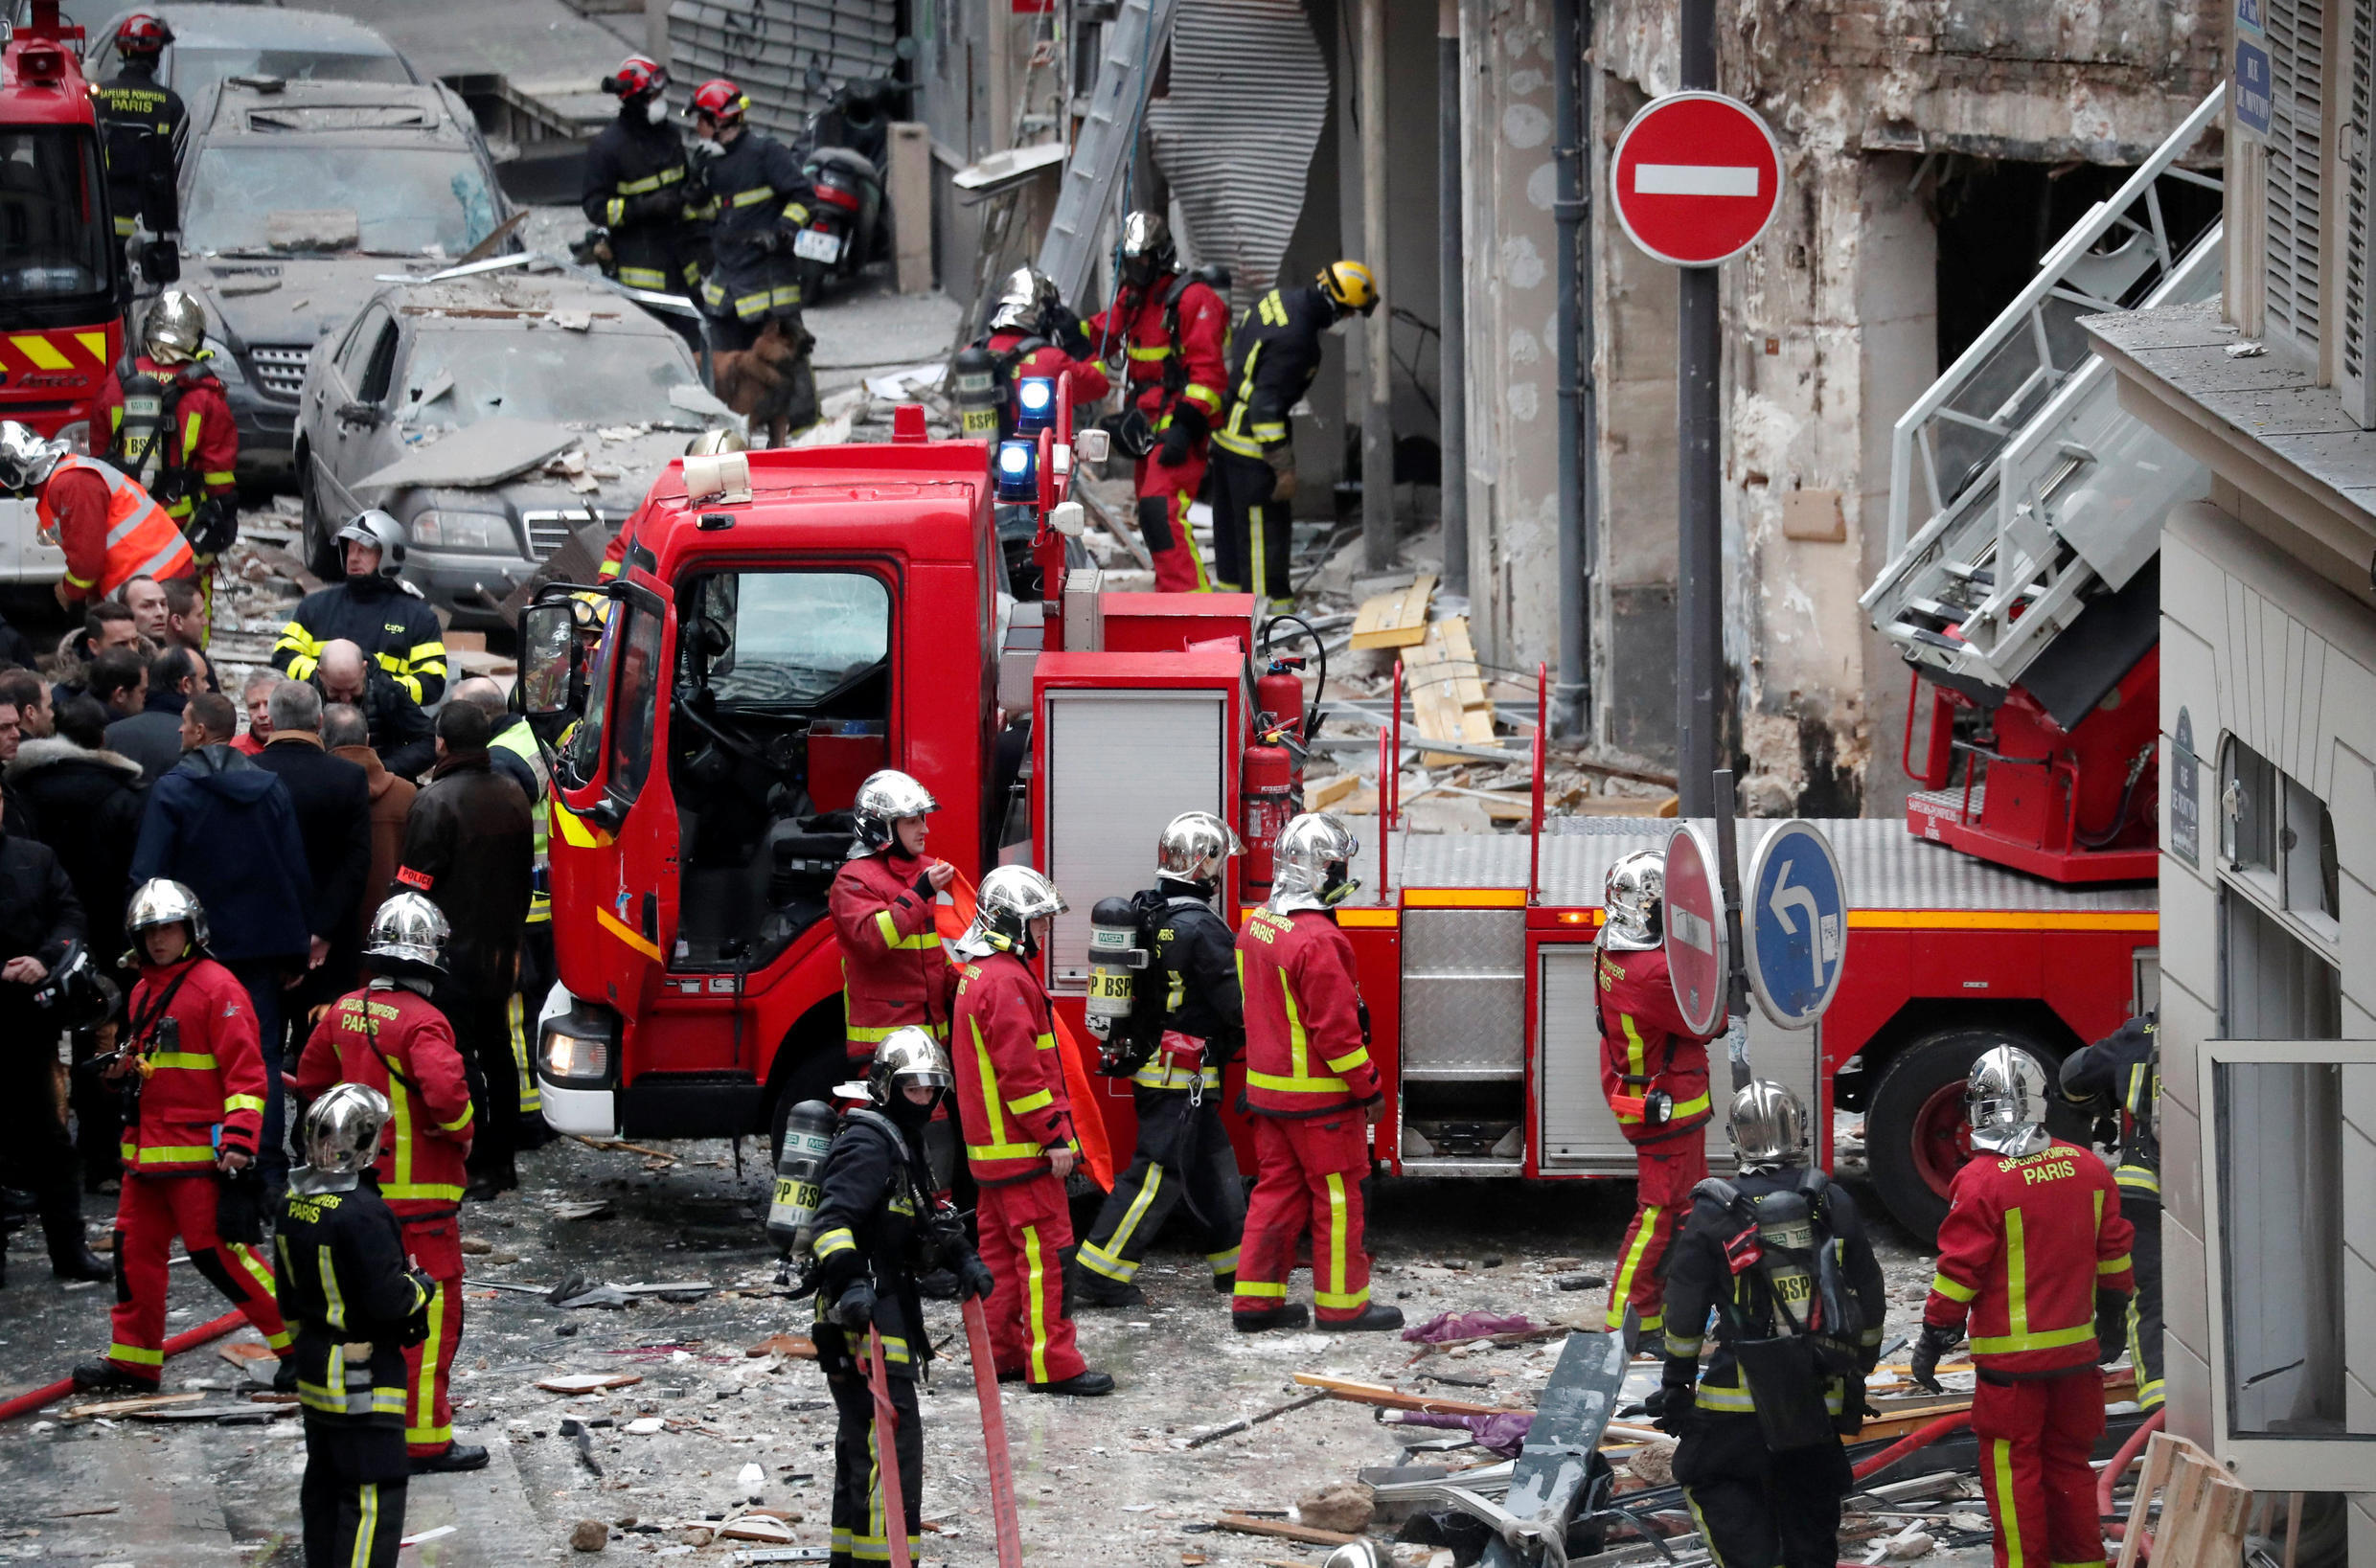 An explosion in a central Paris bakery left four dead on Saturday morning. The incident was unrelated to the Yellow Vest movement.